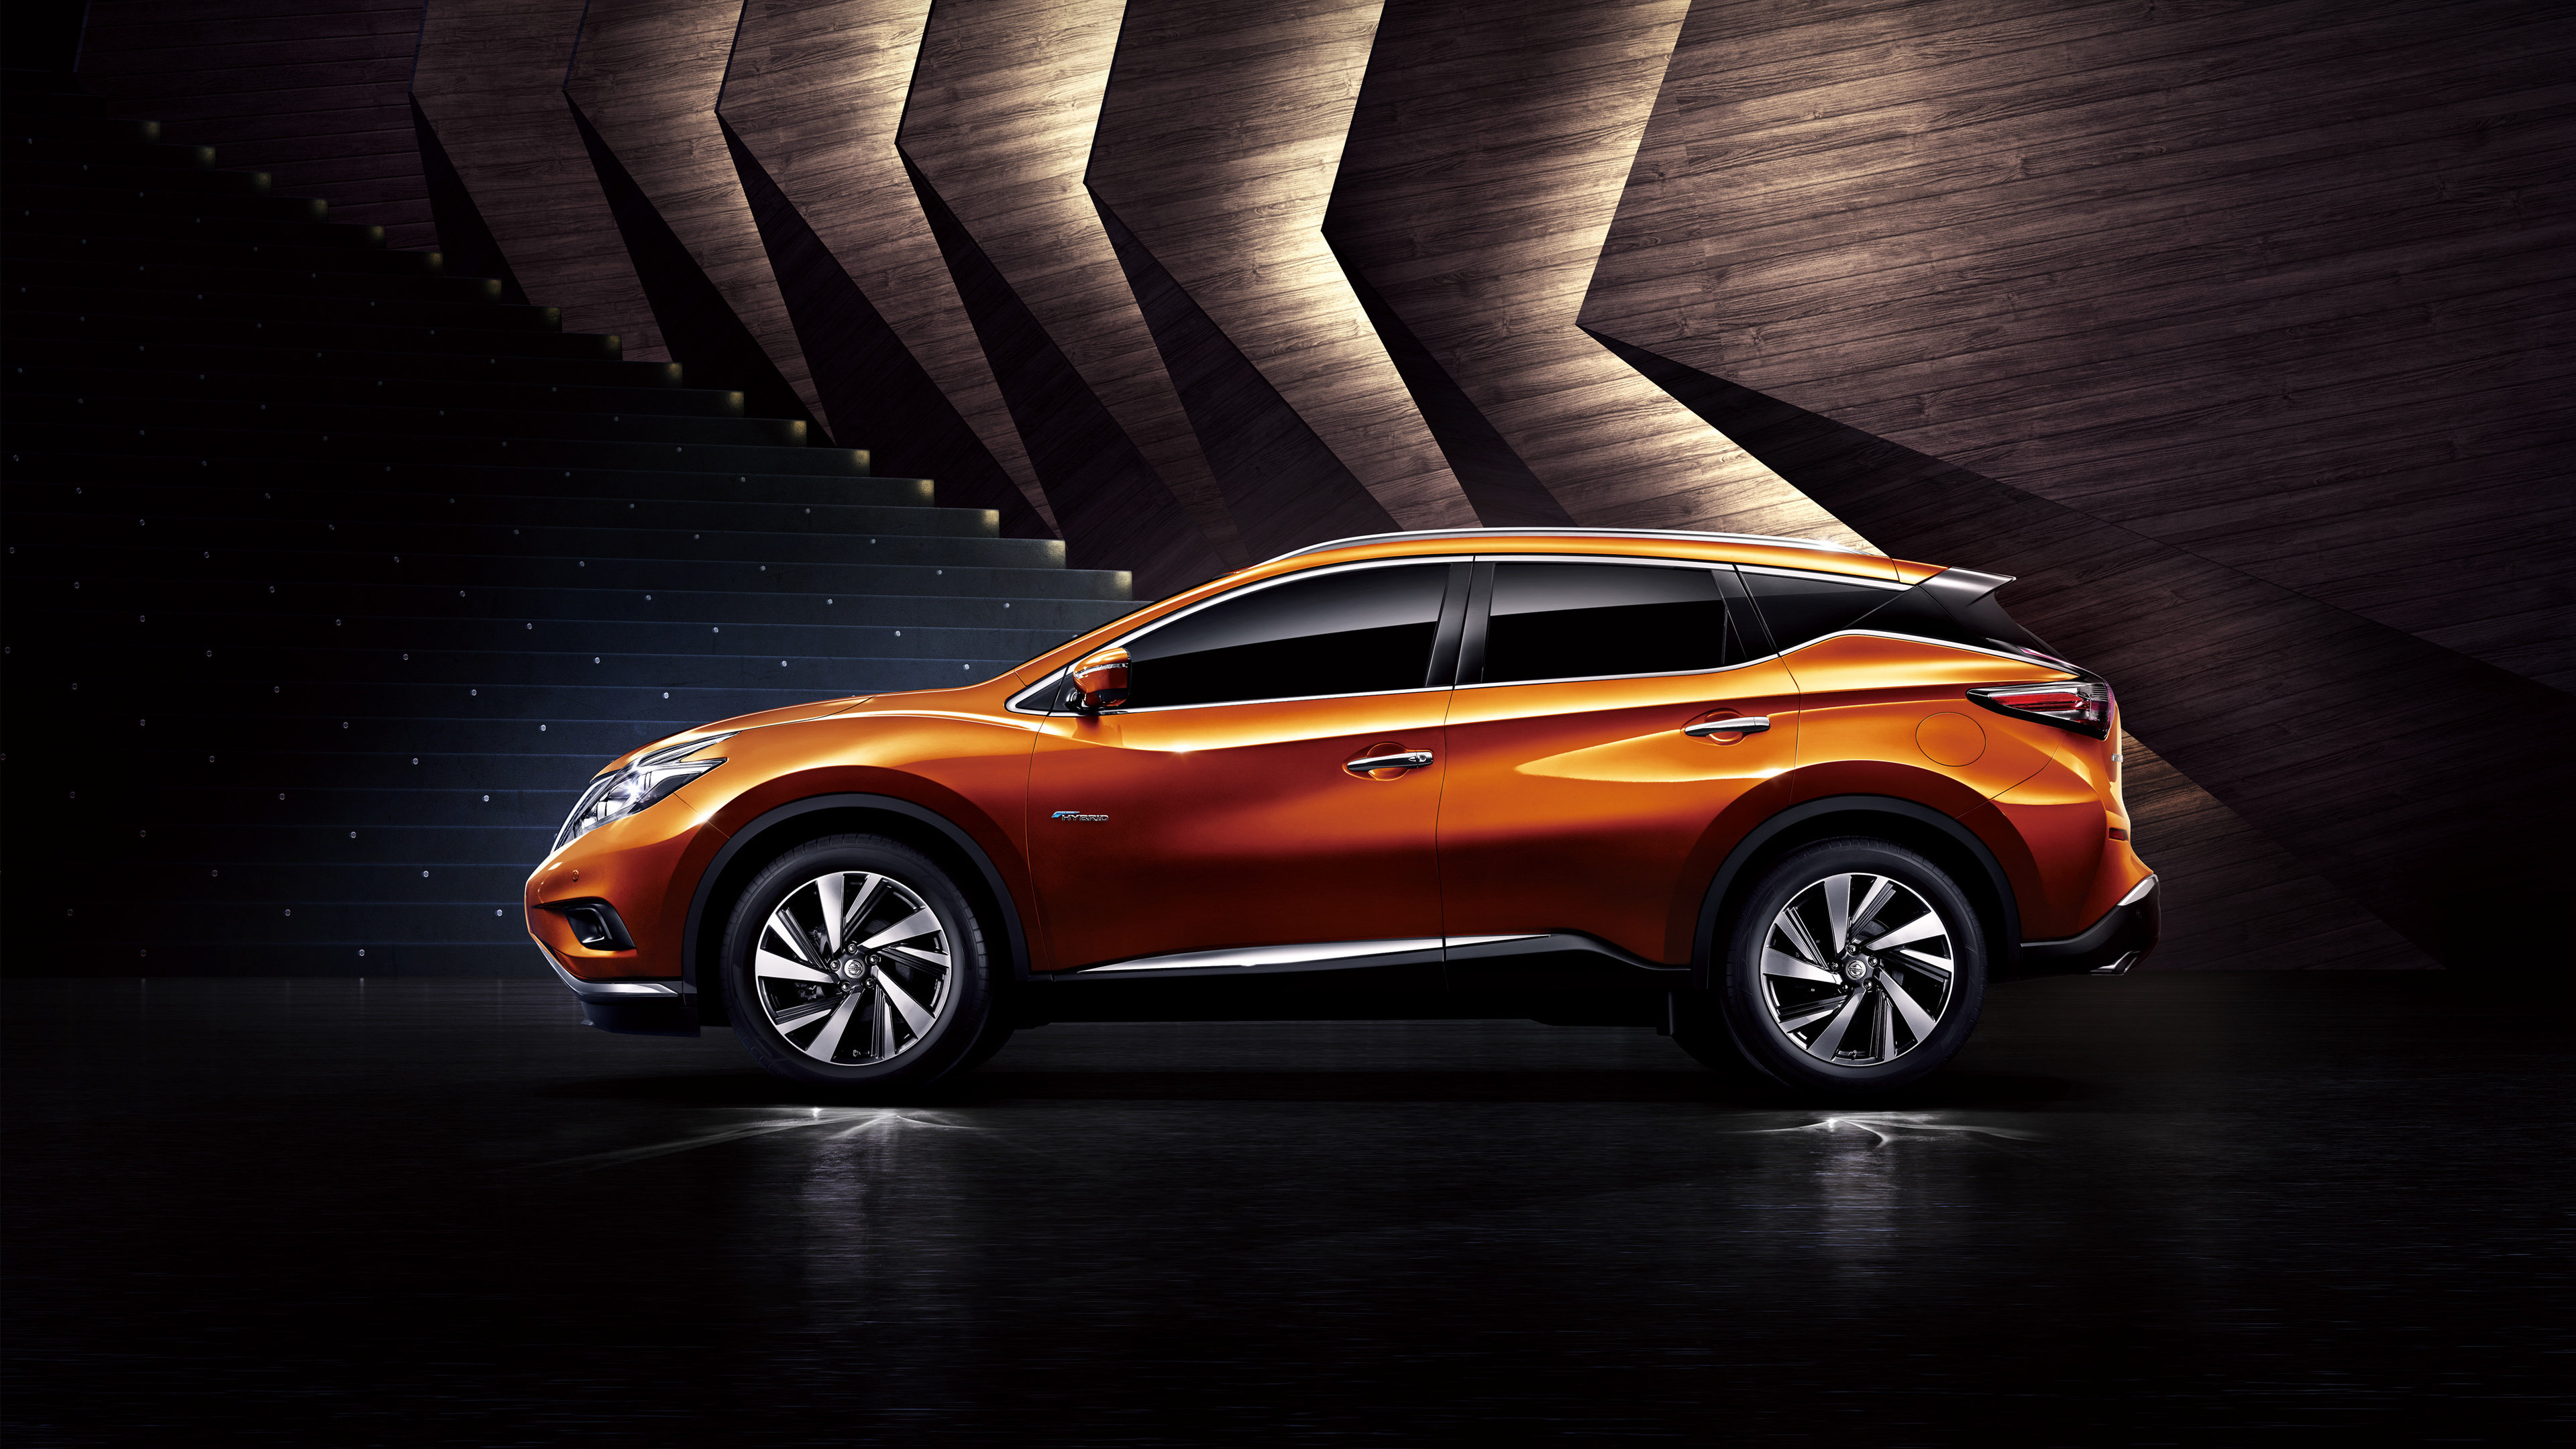 2016 nissan murano 2 wallpaper hd car wallpapers id 6766. Black Bedroom Furniture Sets. Home Design Ideas